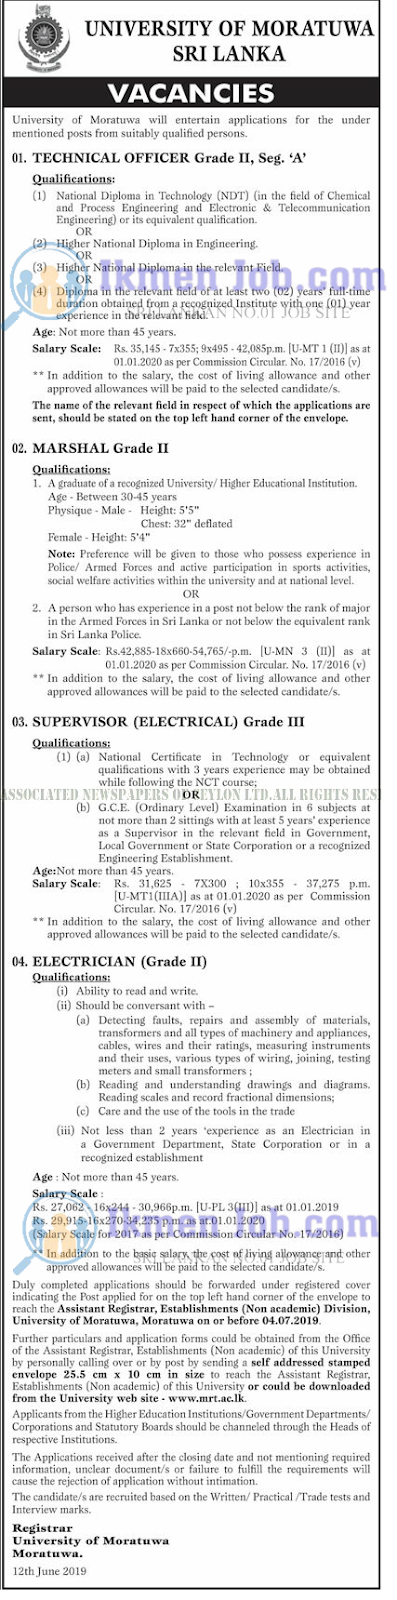 JOBS- TECHNICAL OFFICER - MARSHAL - SUPERVISOR - ELECTRICIAN - MORATUWA UNIVERSITY